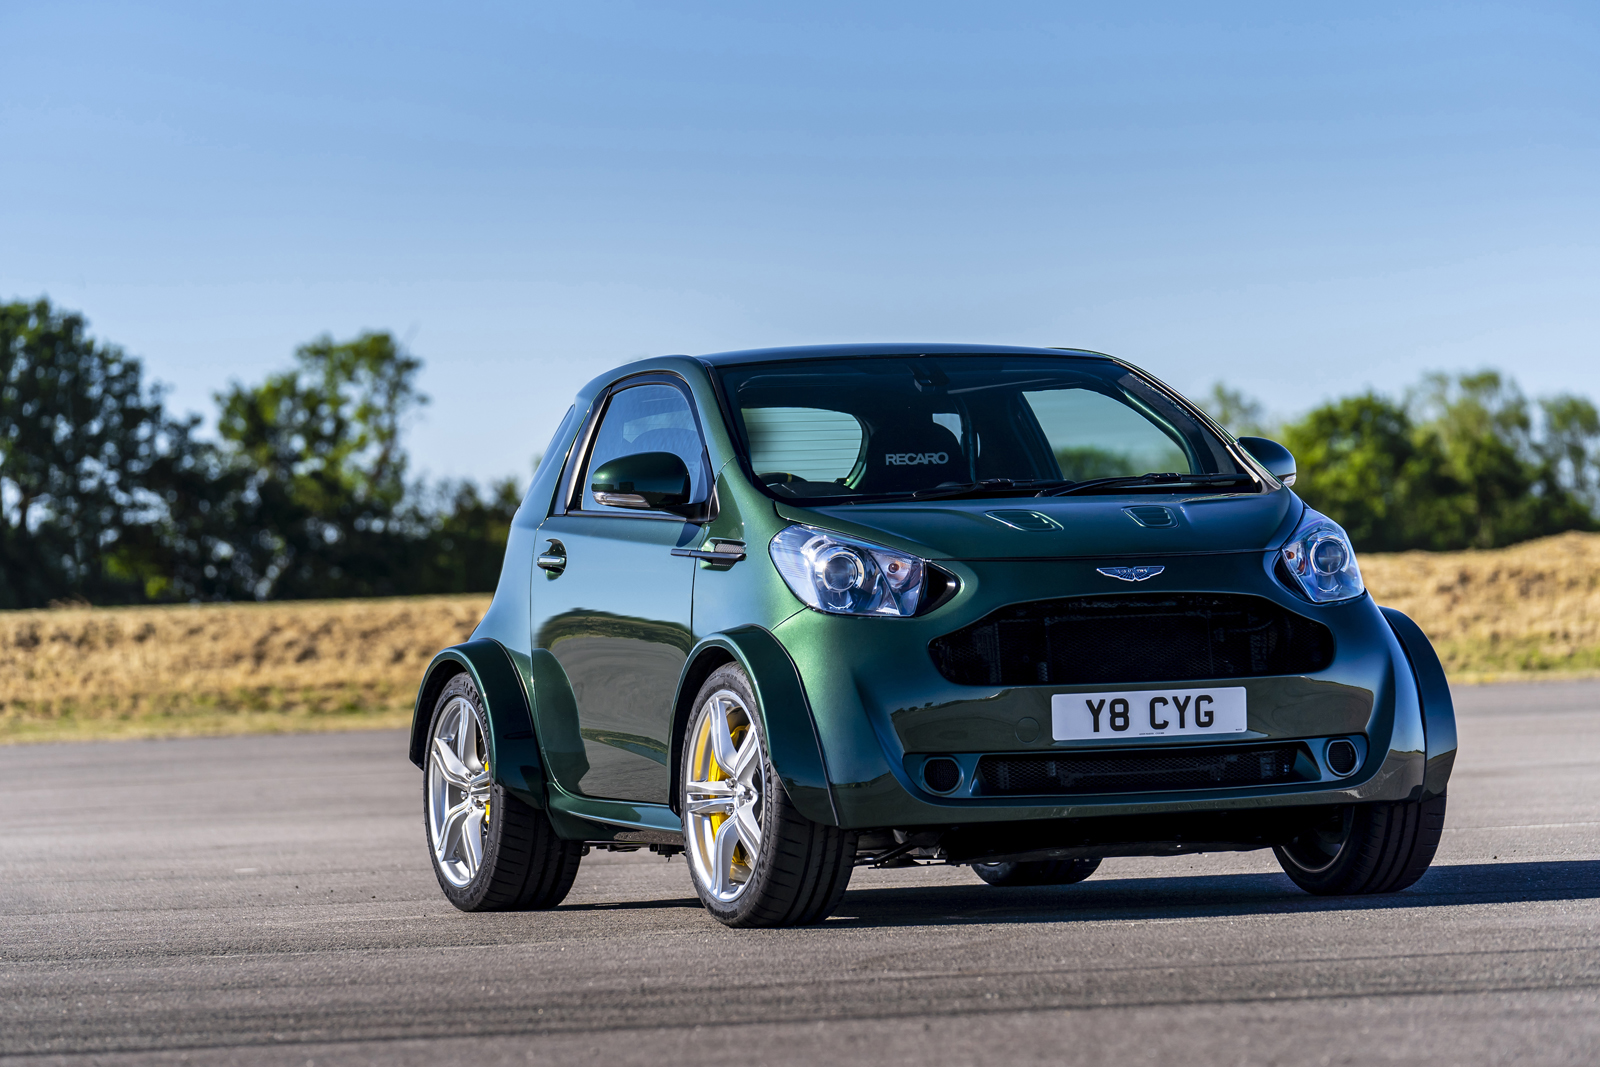 Aston Martin V8 Cygnet Is Real And Completely Bonkers